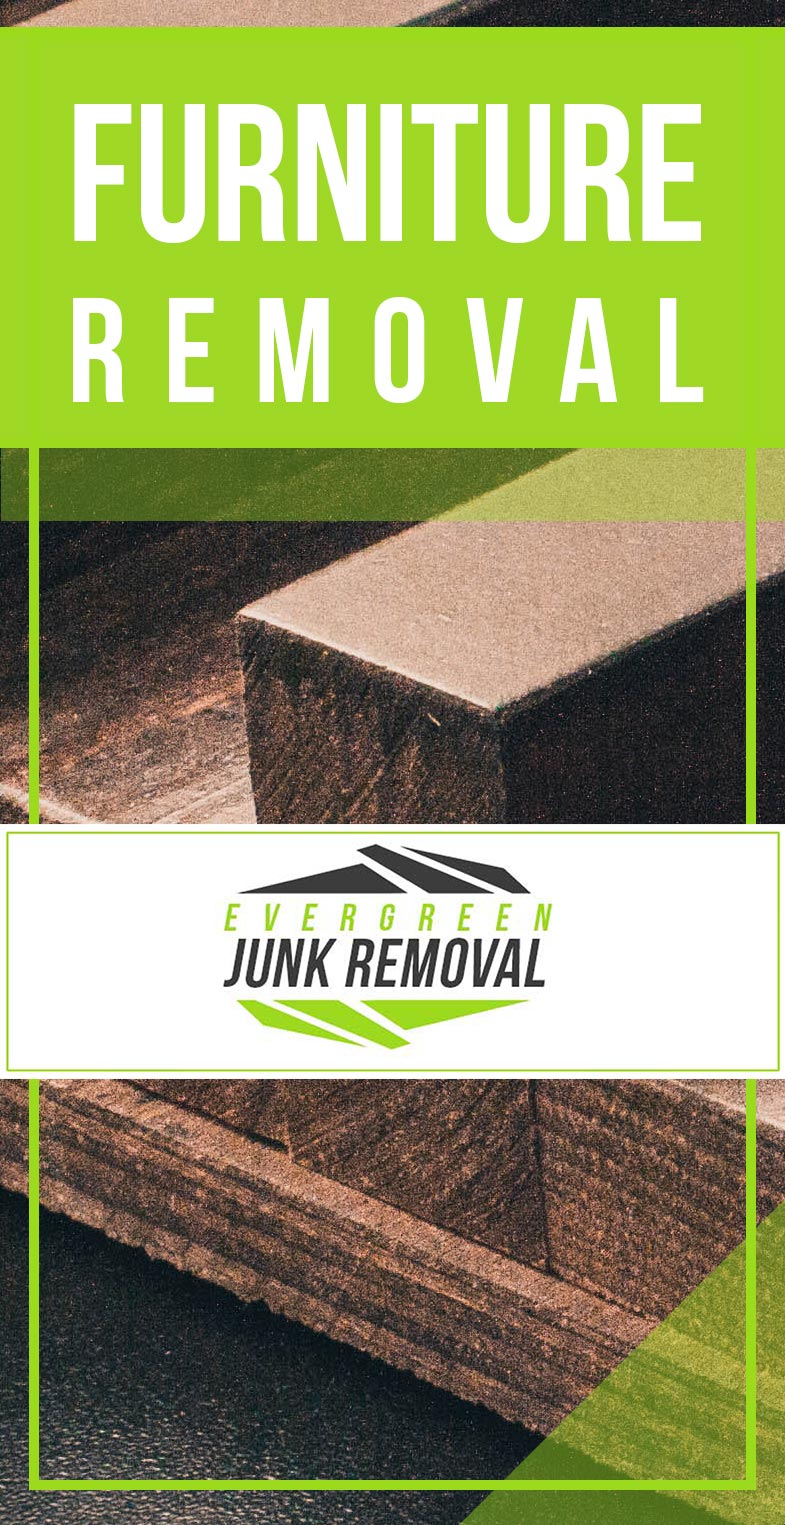 Castle Rock Furniture Removal